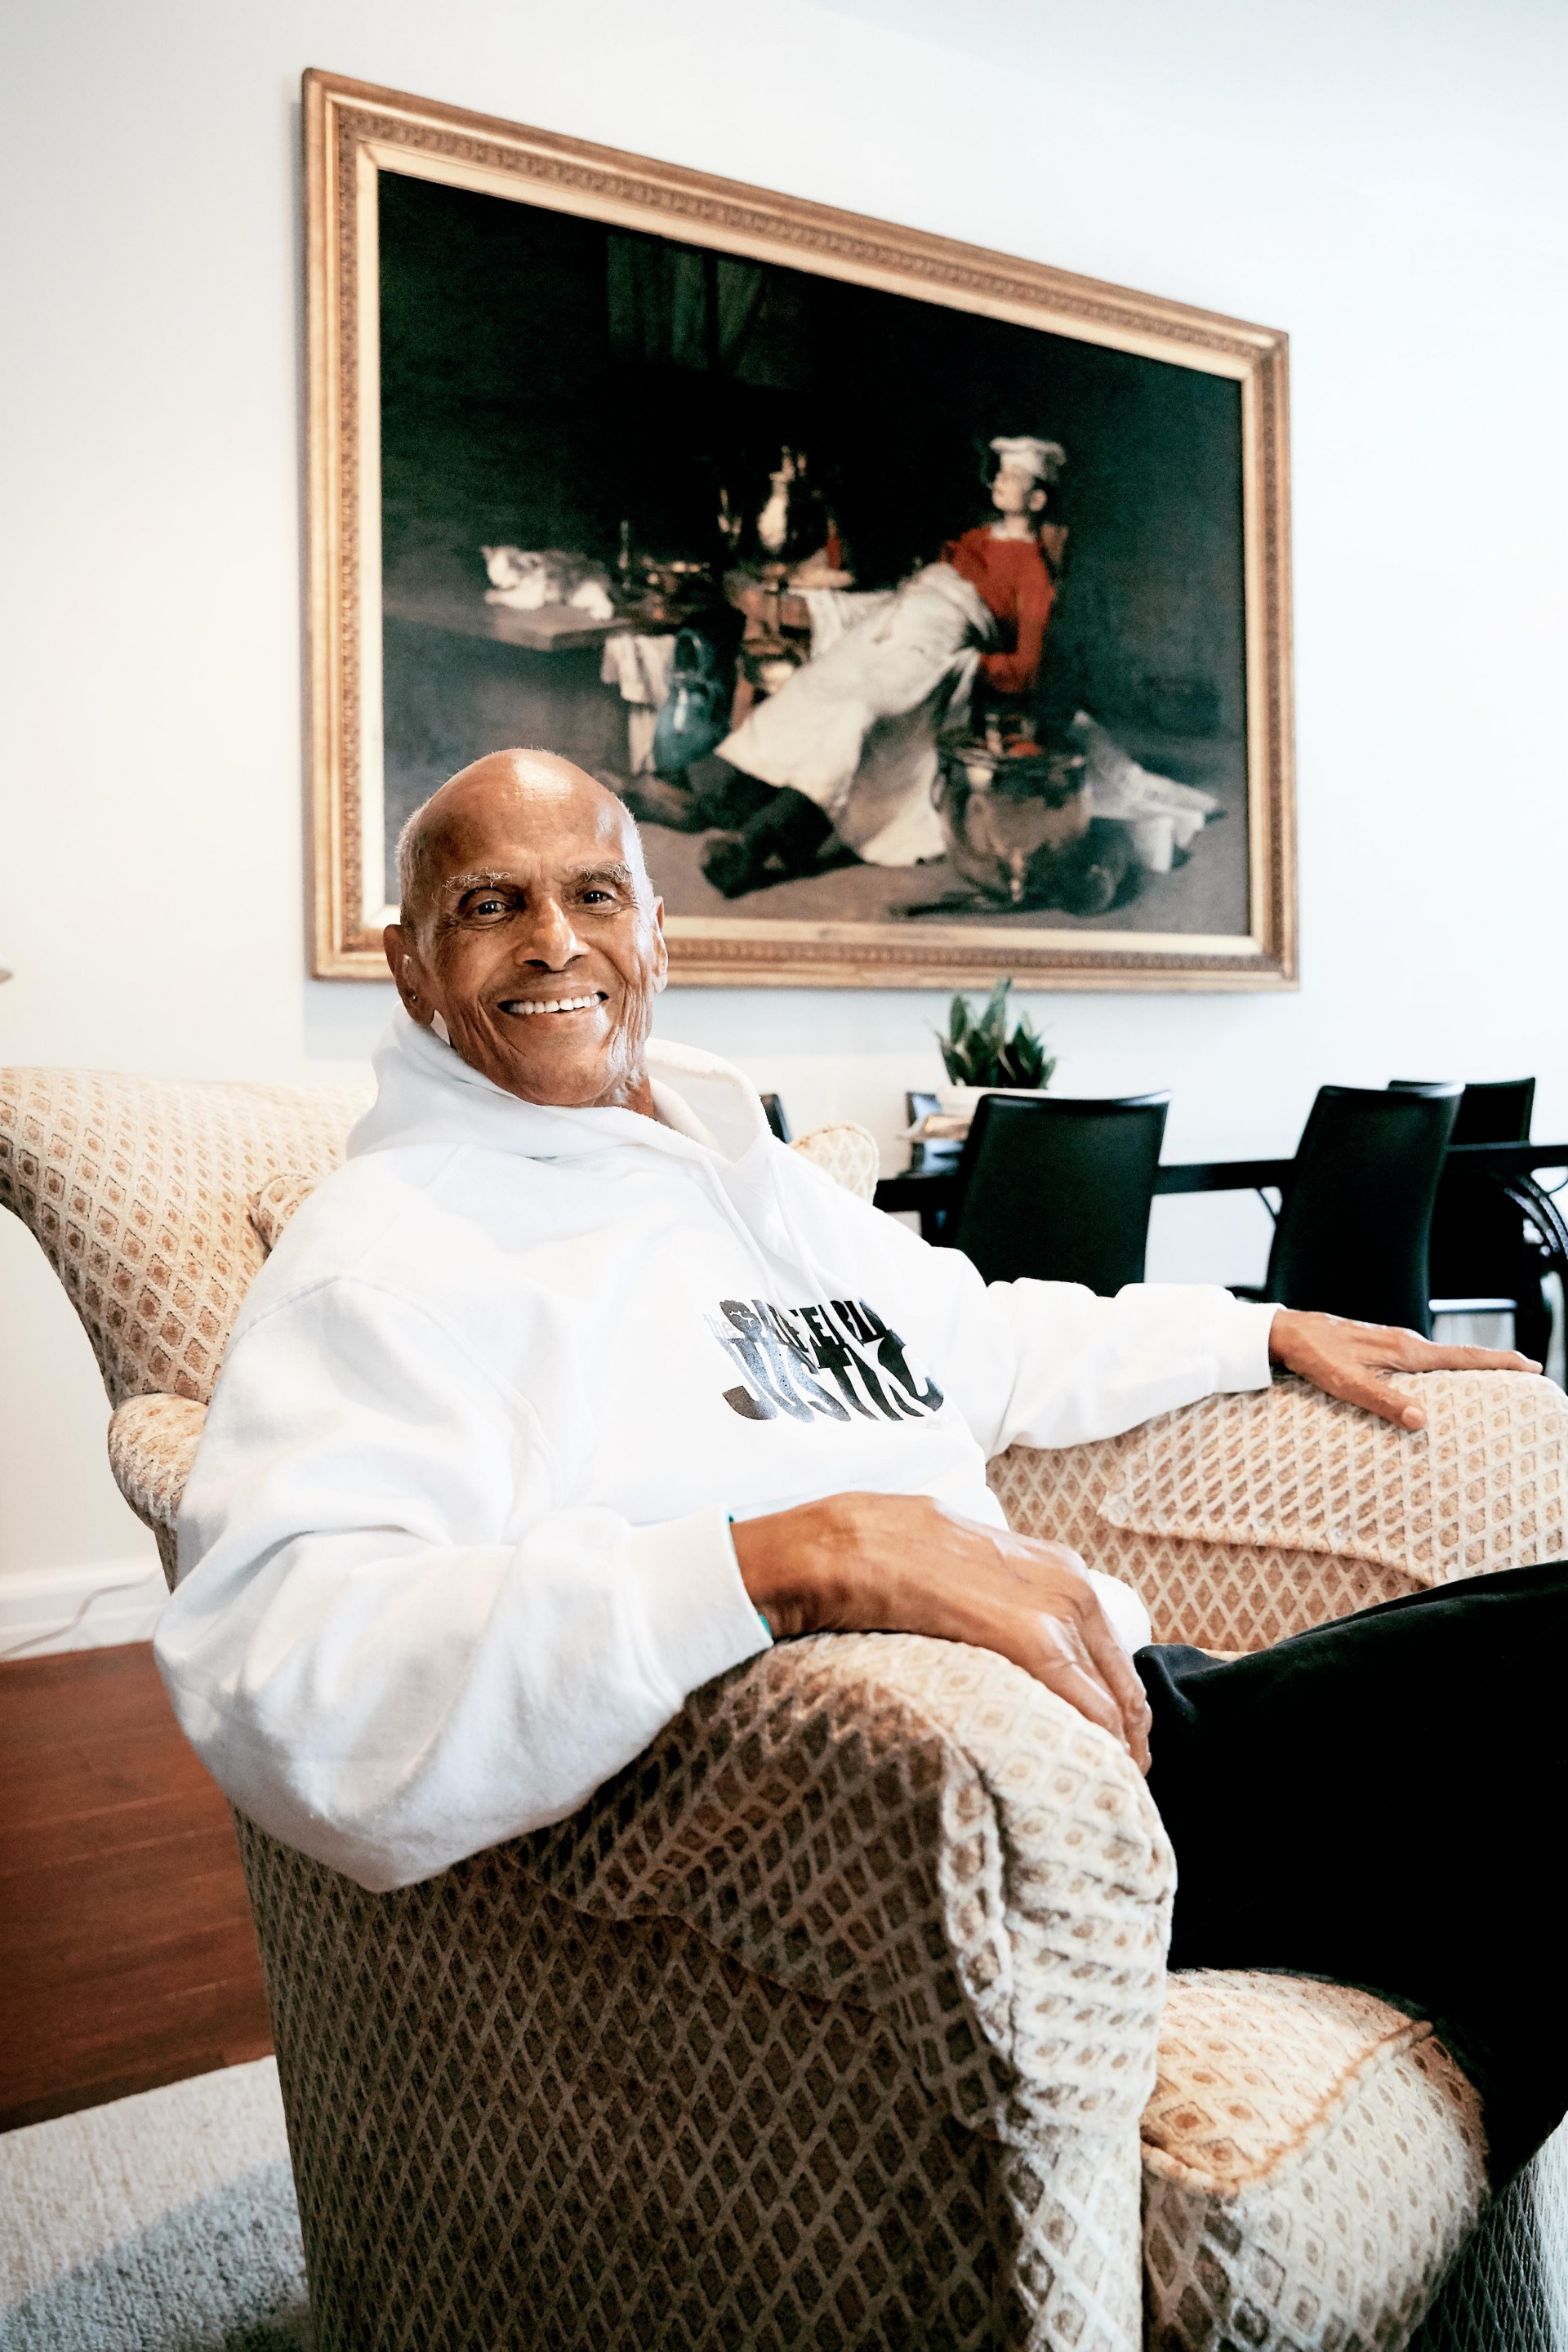 CAROLIN WINDEL Harry Belafonte at home, New York 2019 (more-click here)